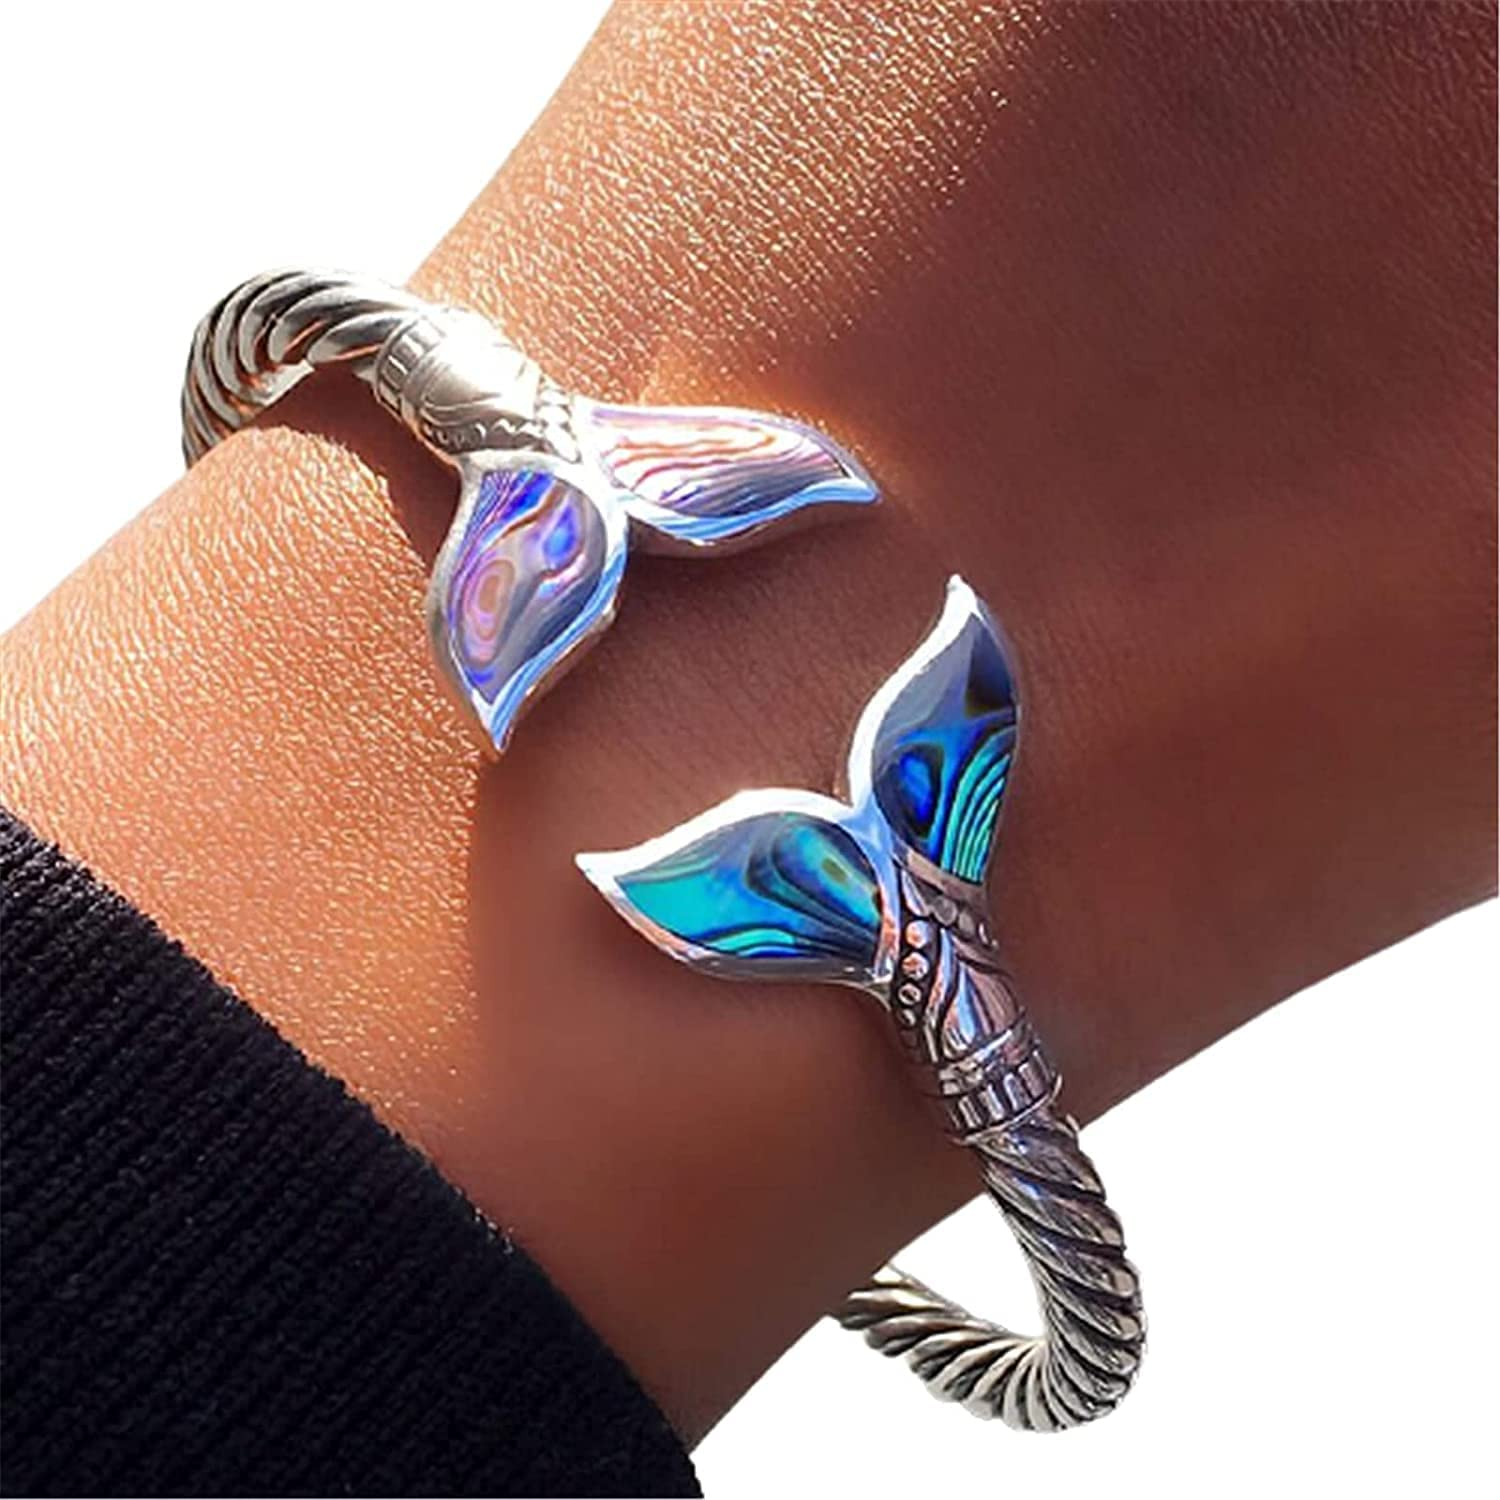 HNMJ Bracelet for Women, Abalone Shell and Mermaid Tail Bangle Bracelet, Adjustable Open Hand Chain,Durable Marine Style Jewelry Valentine's Day Gift for Girl,Women Girls Jewelry Gift Bracelet